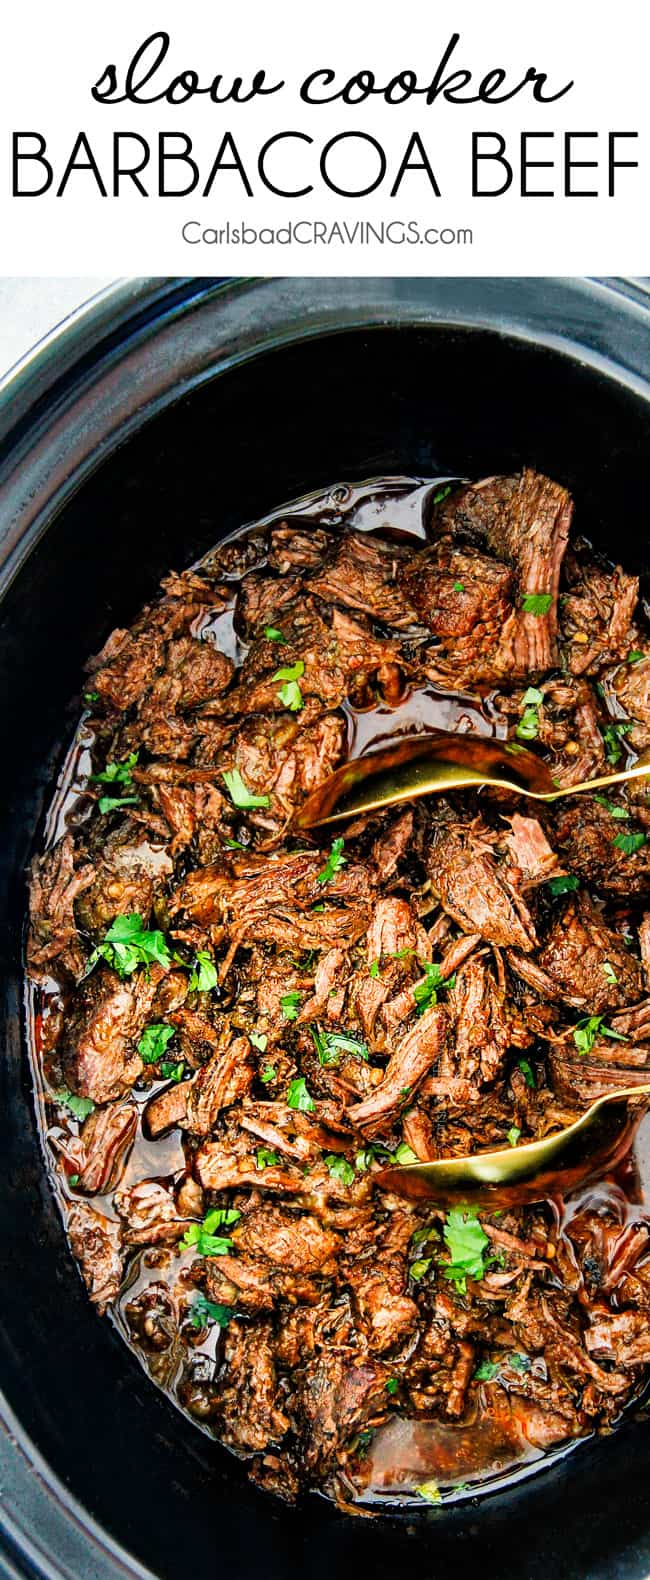 Slow Cooker Barbacoa Beef by Carlsbad Cravings | Healthy and Delicious Make Ahead Meals